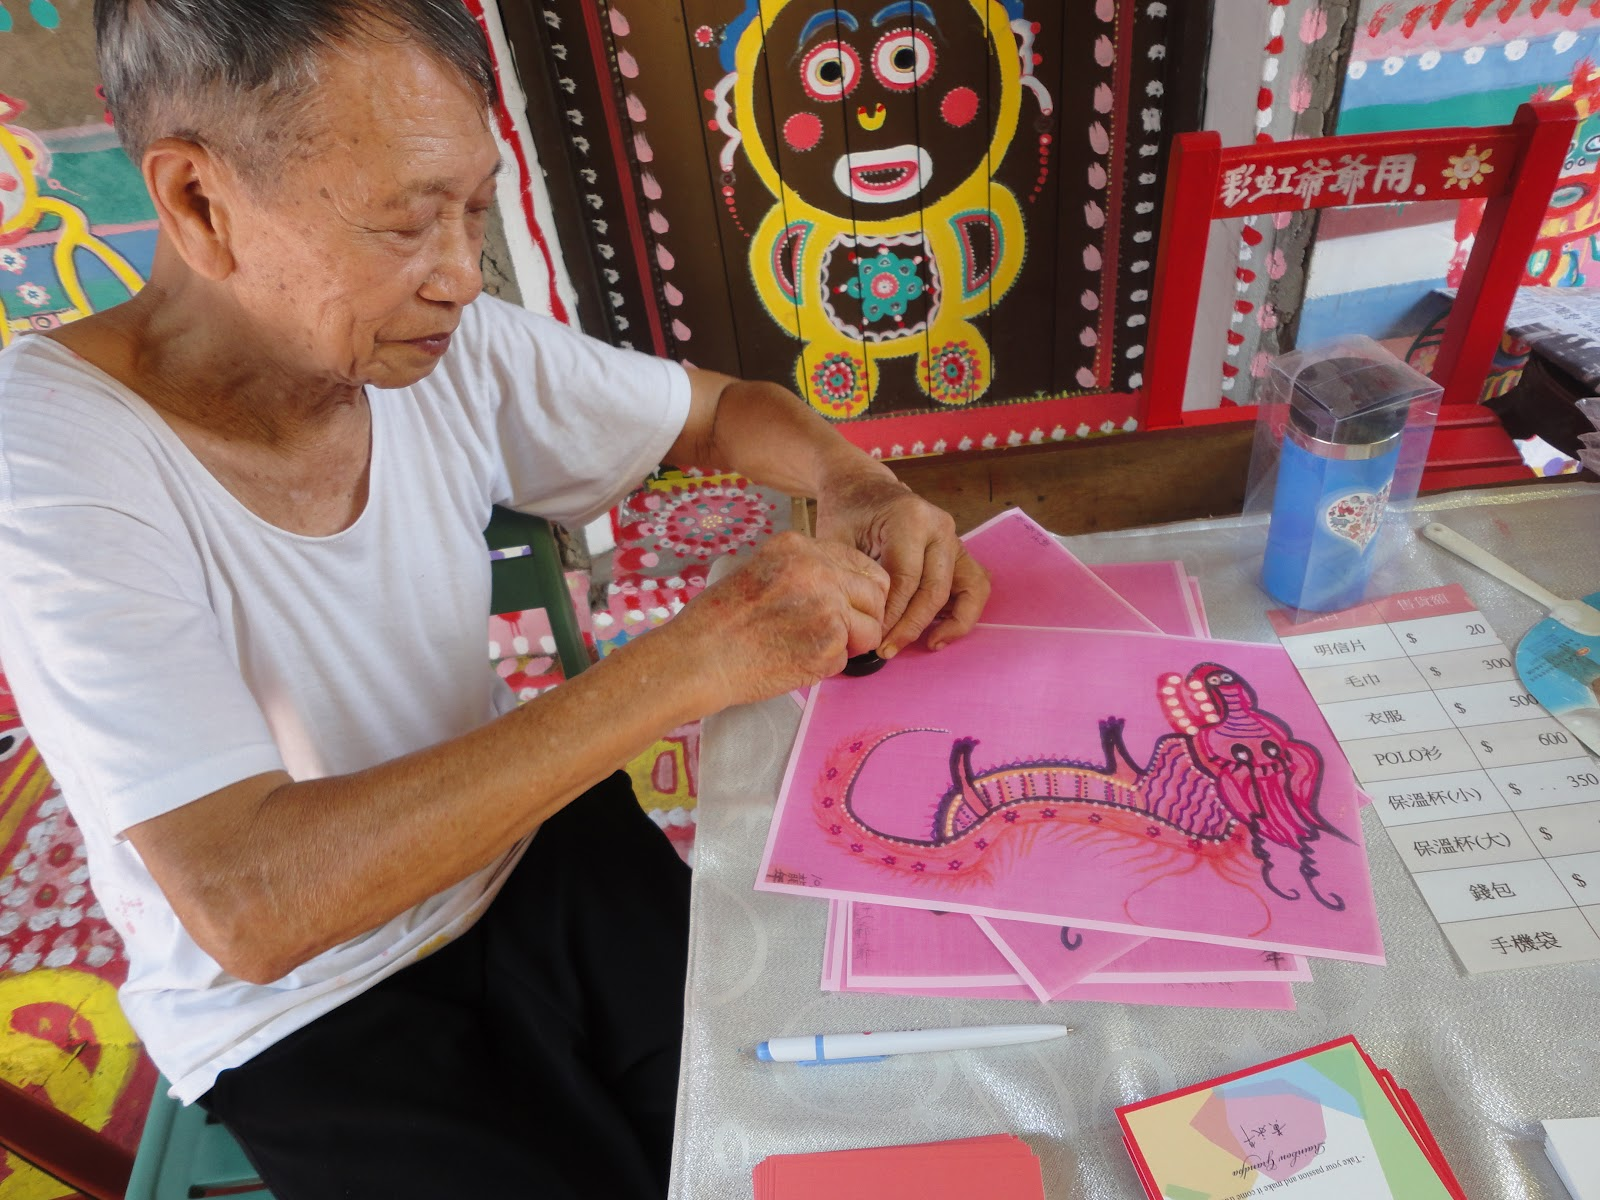 An Entire Community in Taiwan Hand-Painted by a Single Man